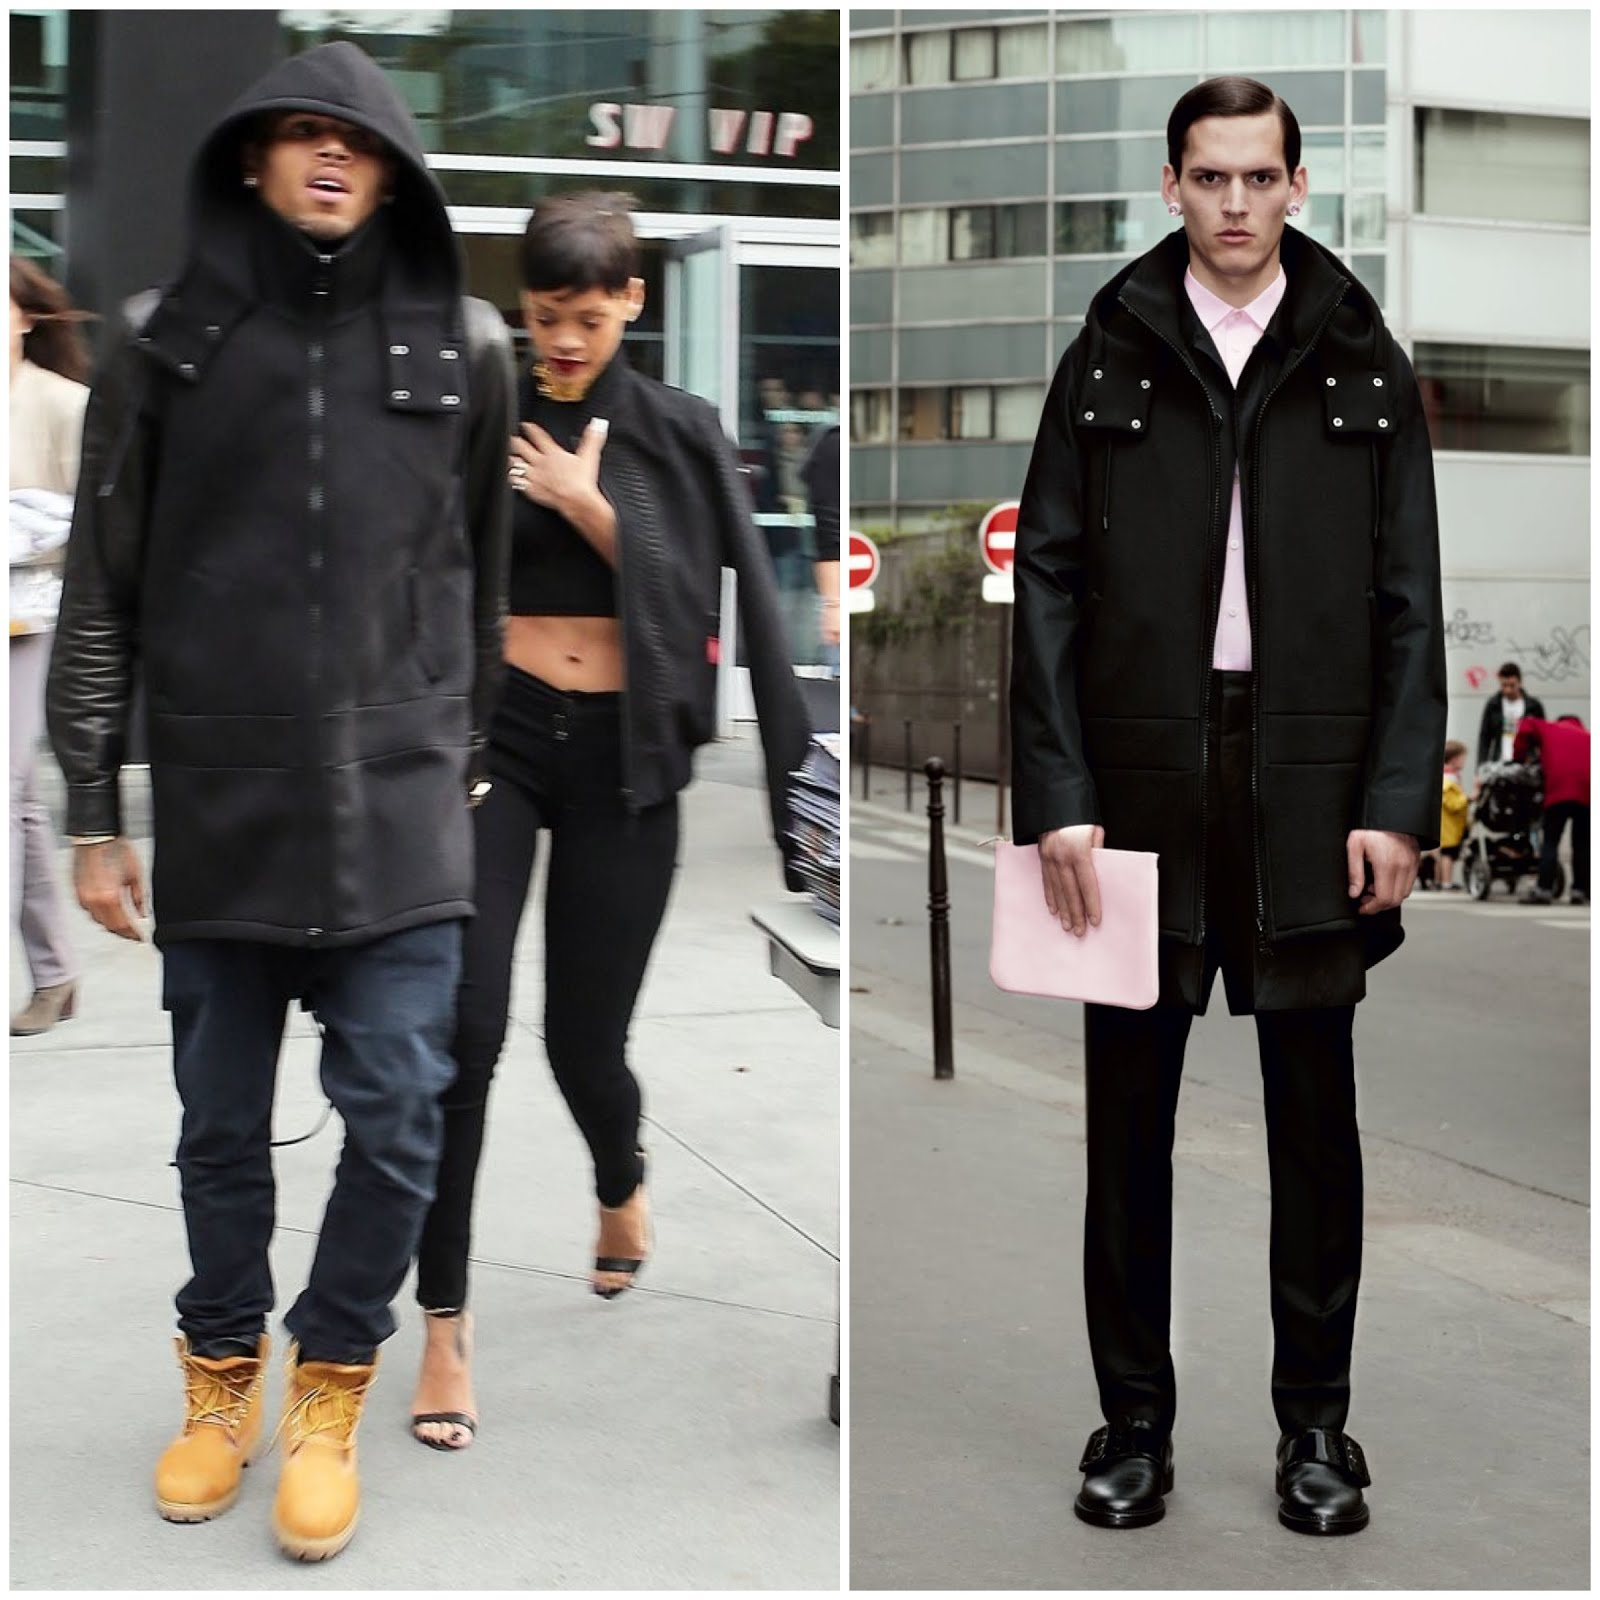 00O00 London Menswear Blog Rihanna and Chris Brown in Givenchy - Los Angeles Lakers basketball game Christmas Day